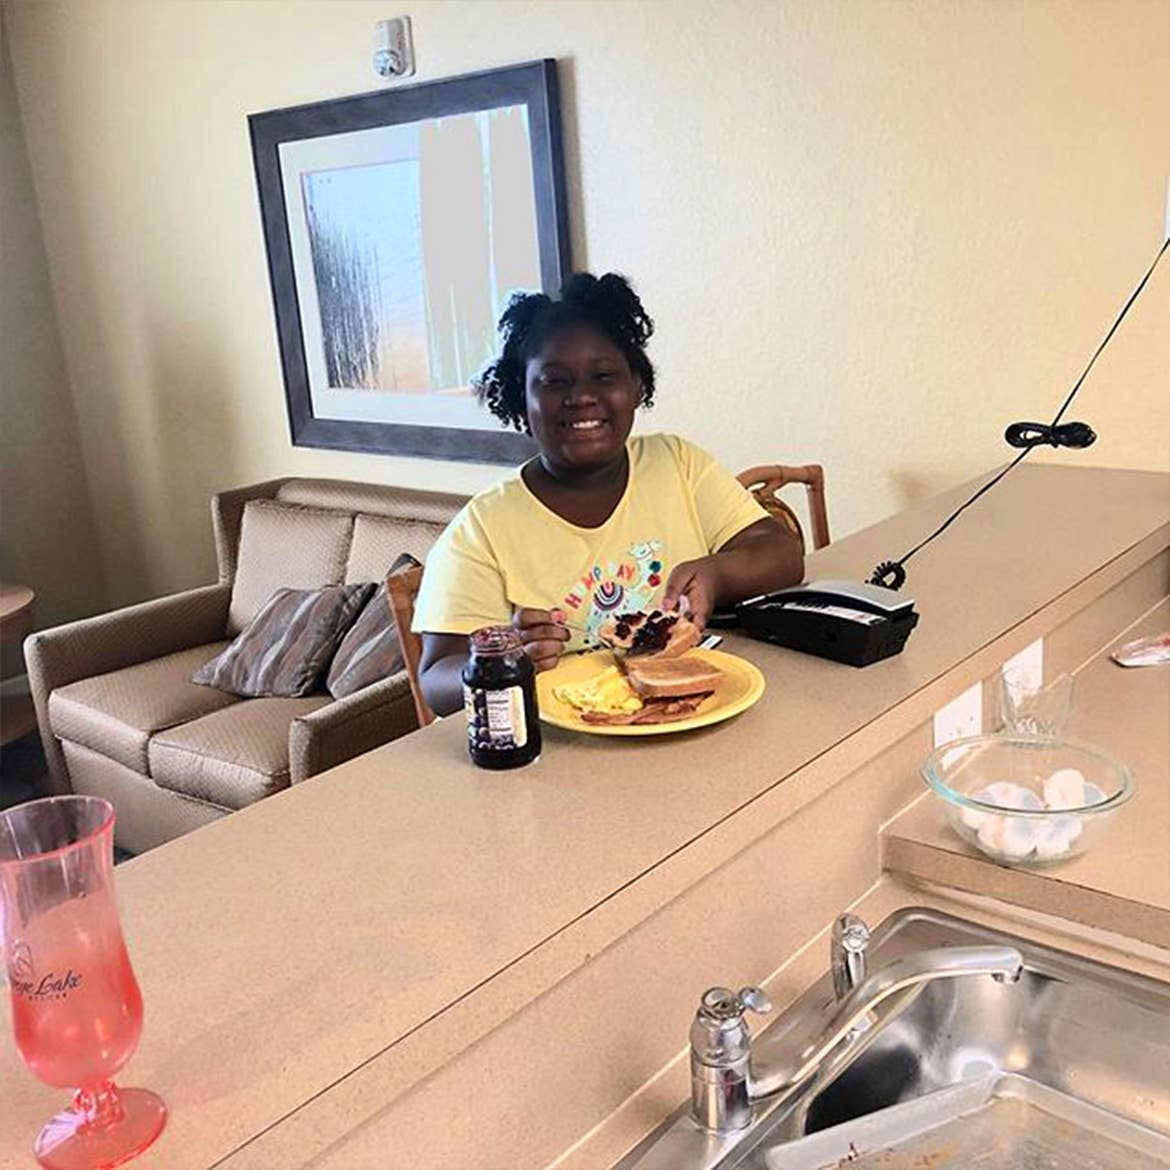 A guest enjoying breakfast at their kitchen countertop in our villa at Orange Lake Resort.